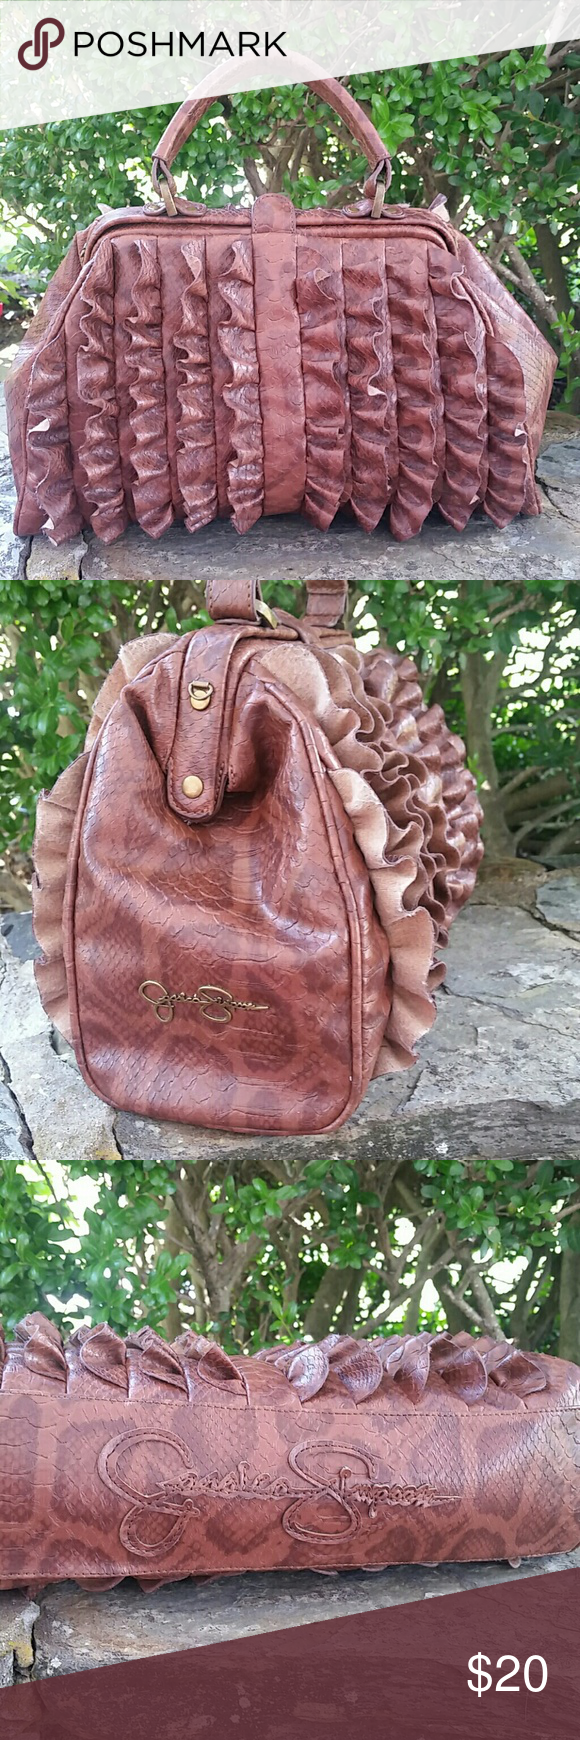 Jessica Simpson purse Warm chocolate brown in color no rips or stains very unique awesome bad Jessica Simpson Bags Satchels